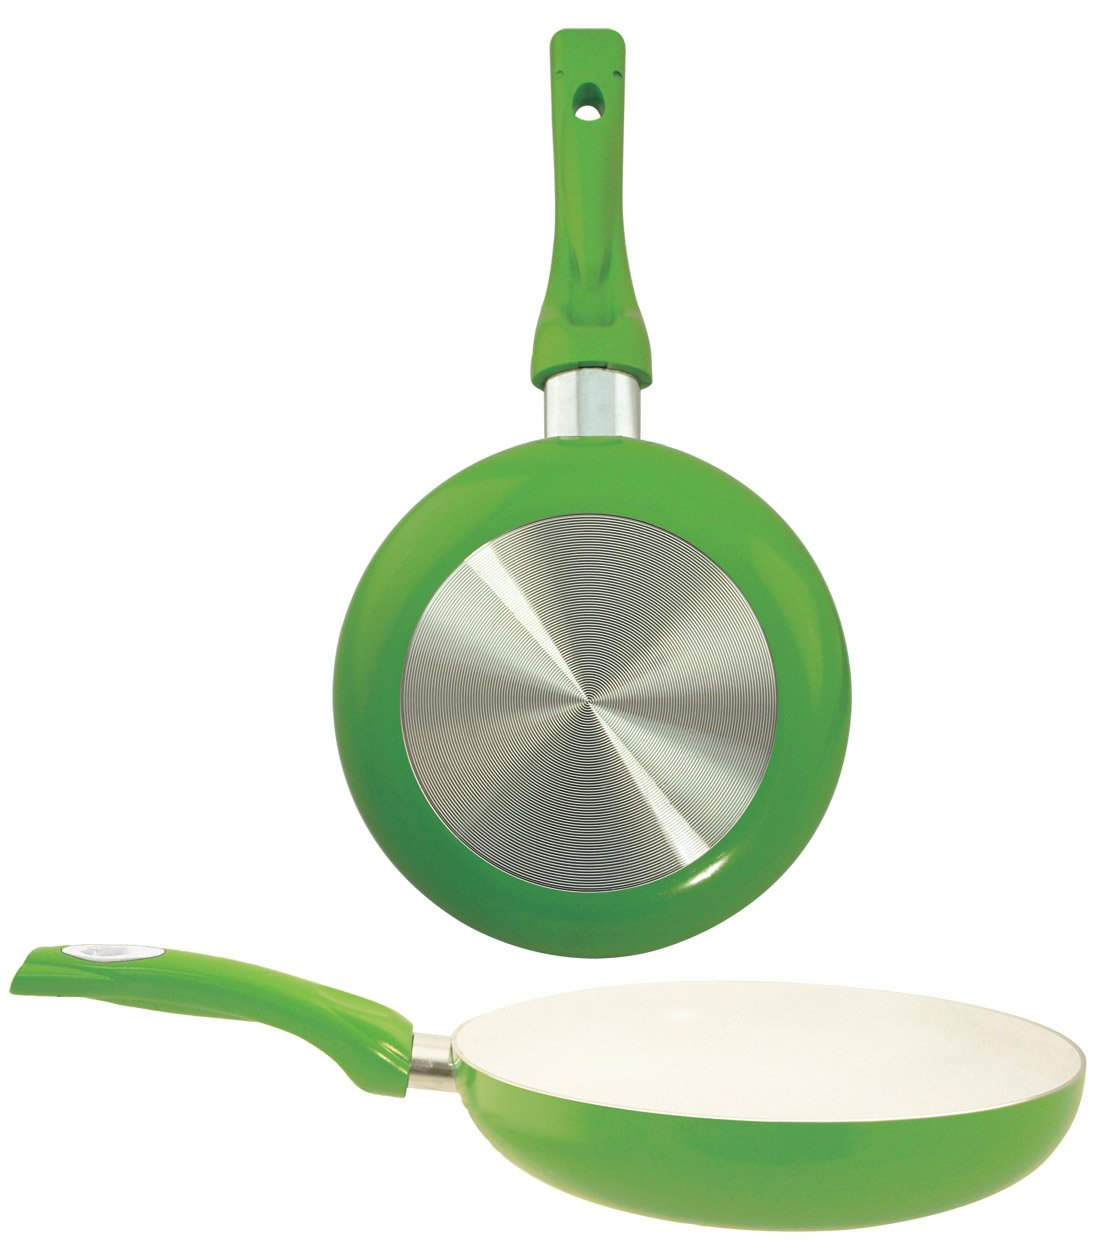 EURO-HOME Ceramic Coated Fry Pan, 11'', Green